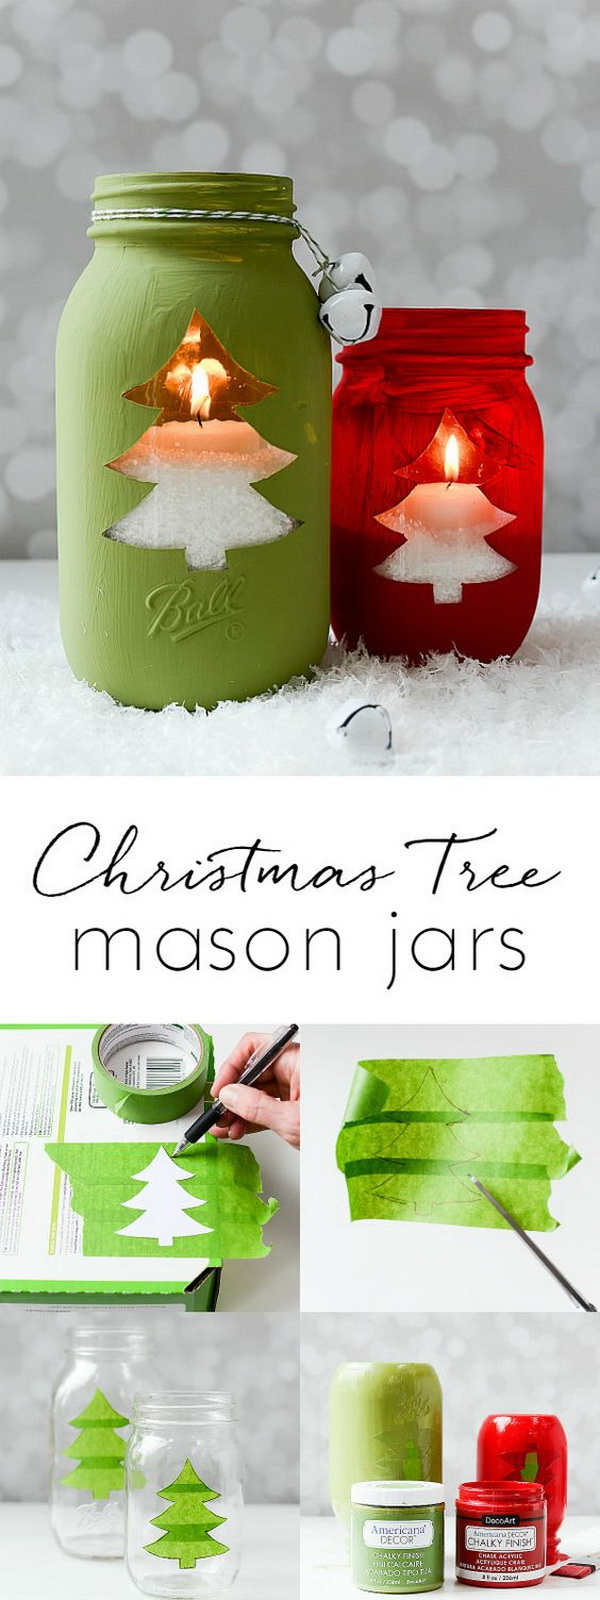 Christmas Tree Mason Jar Votive. Mason jars make great Christmas crafts for decoration and handmade gifts.